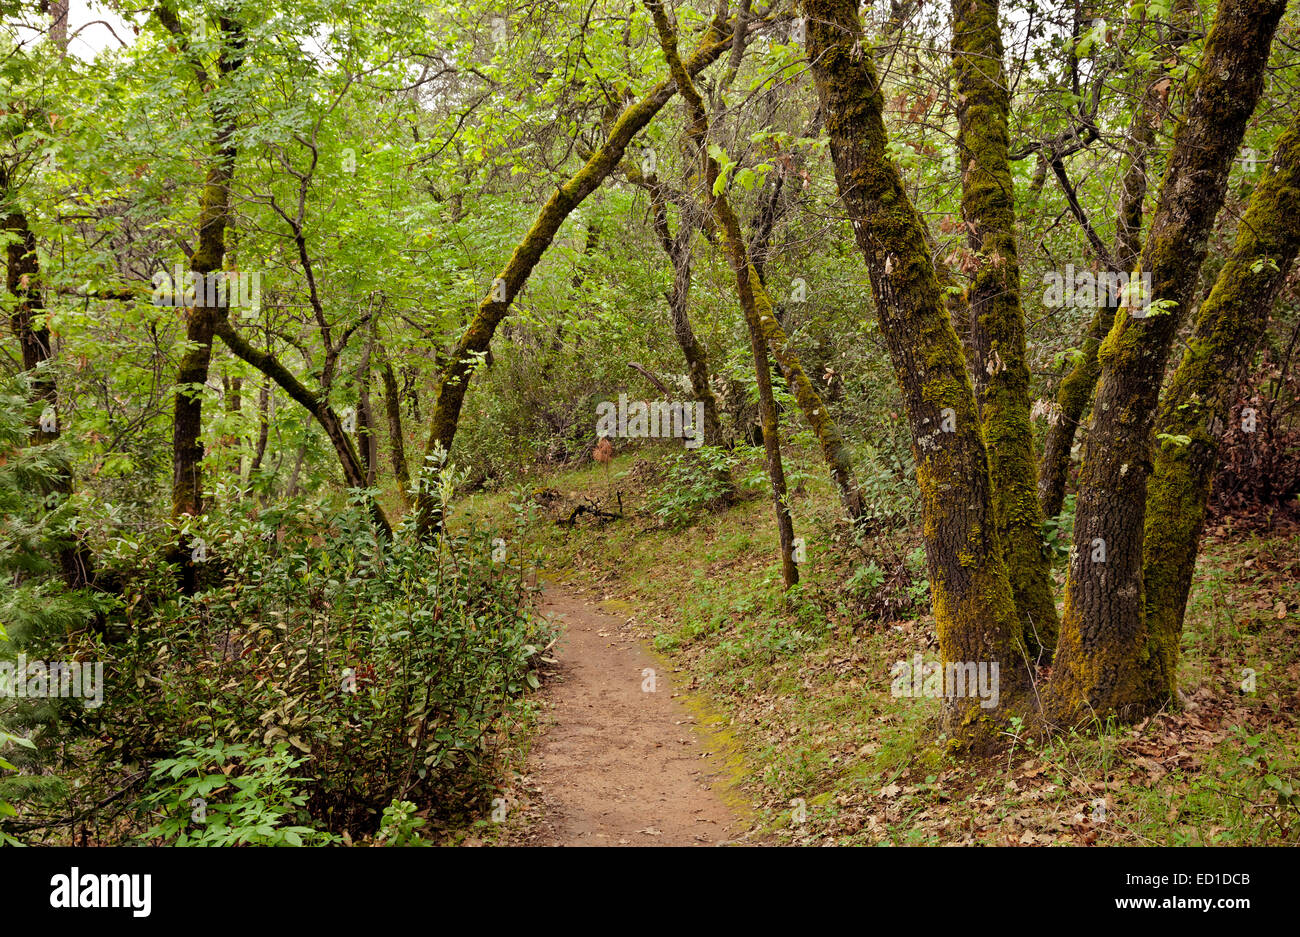 CA02615-00...CALIFORNIA -  The Monroe Ridge Trail in the Marshall Gold Discovery State Historic Park. - Stock Image